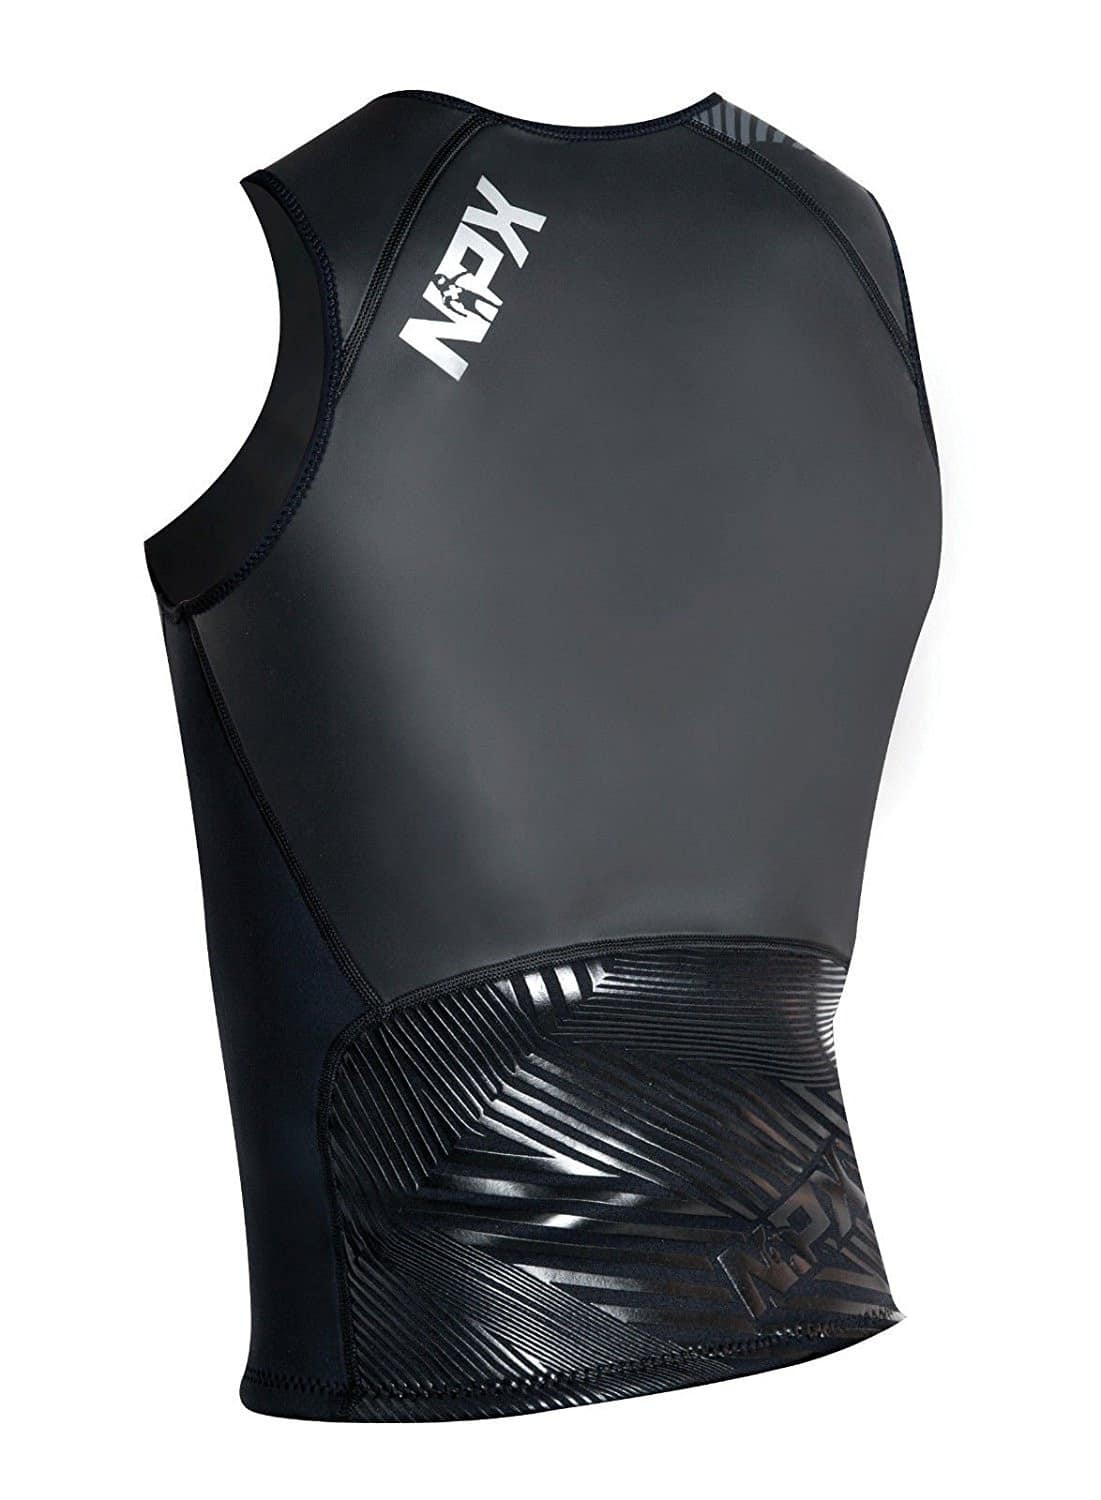 NPX Assassin Vest 2mm Neoprene Layering